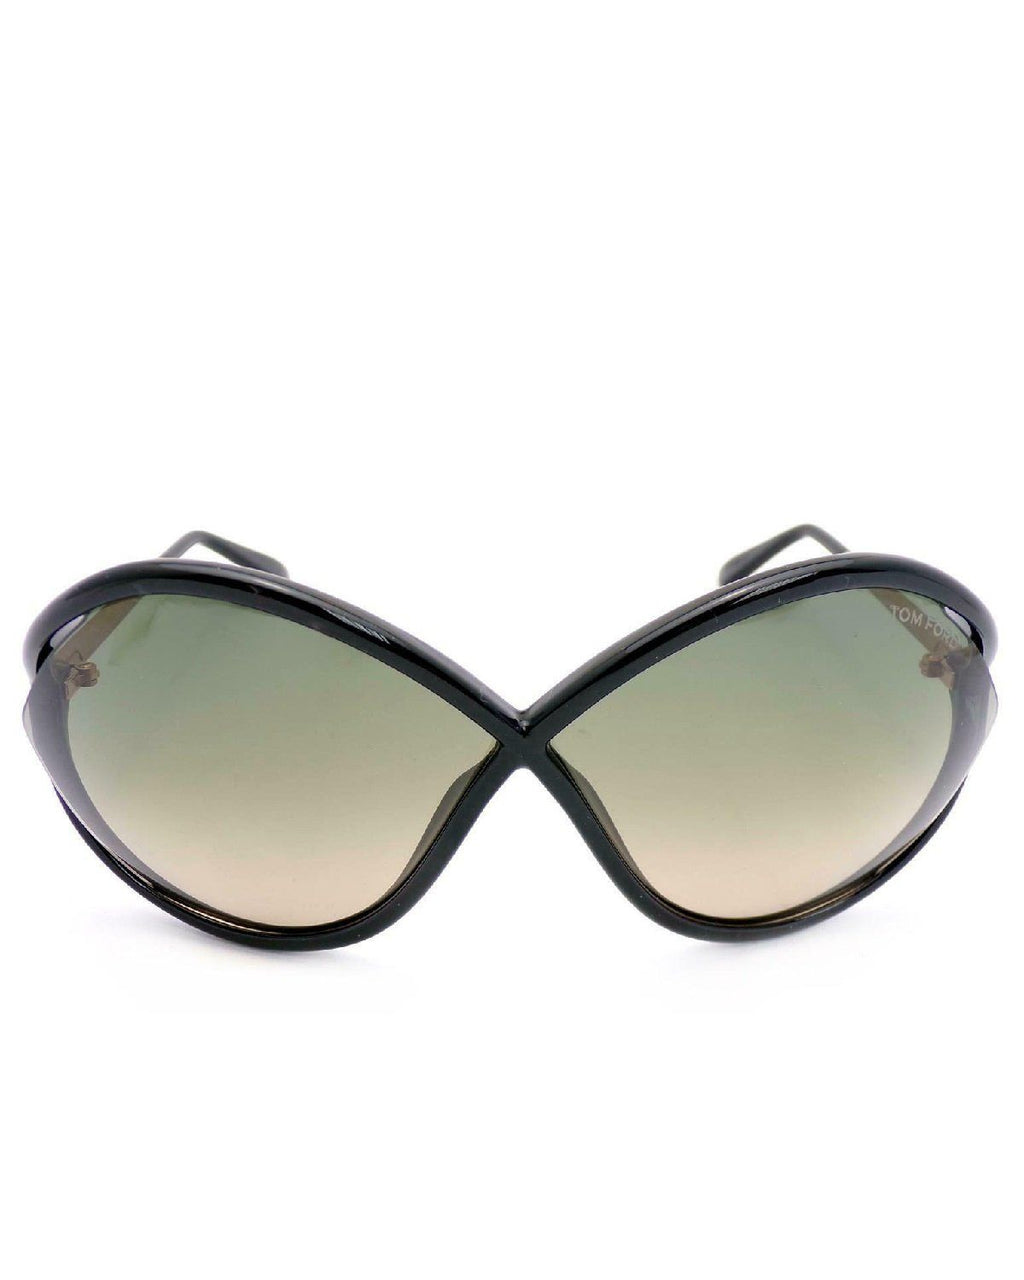 Tom Ford Women's FT0528 Liora Sunglasses